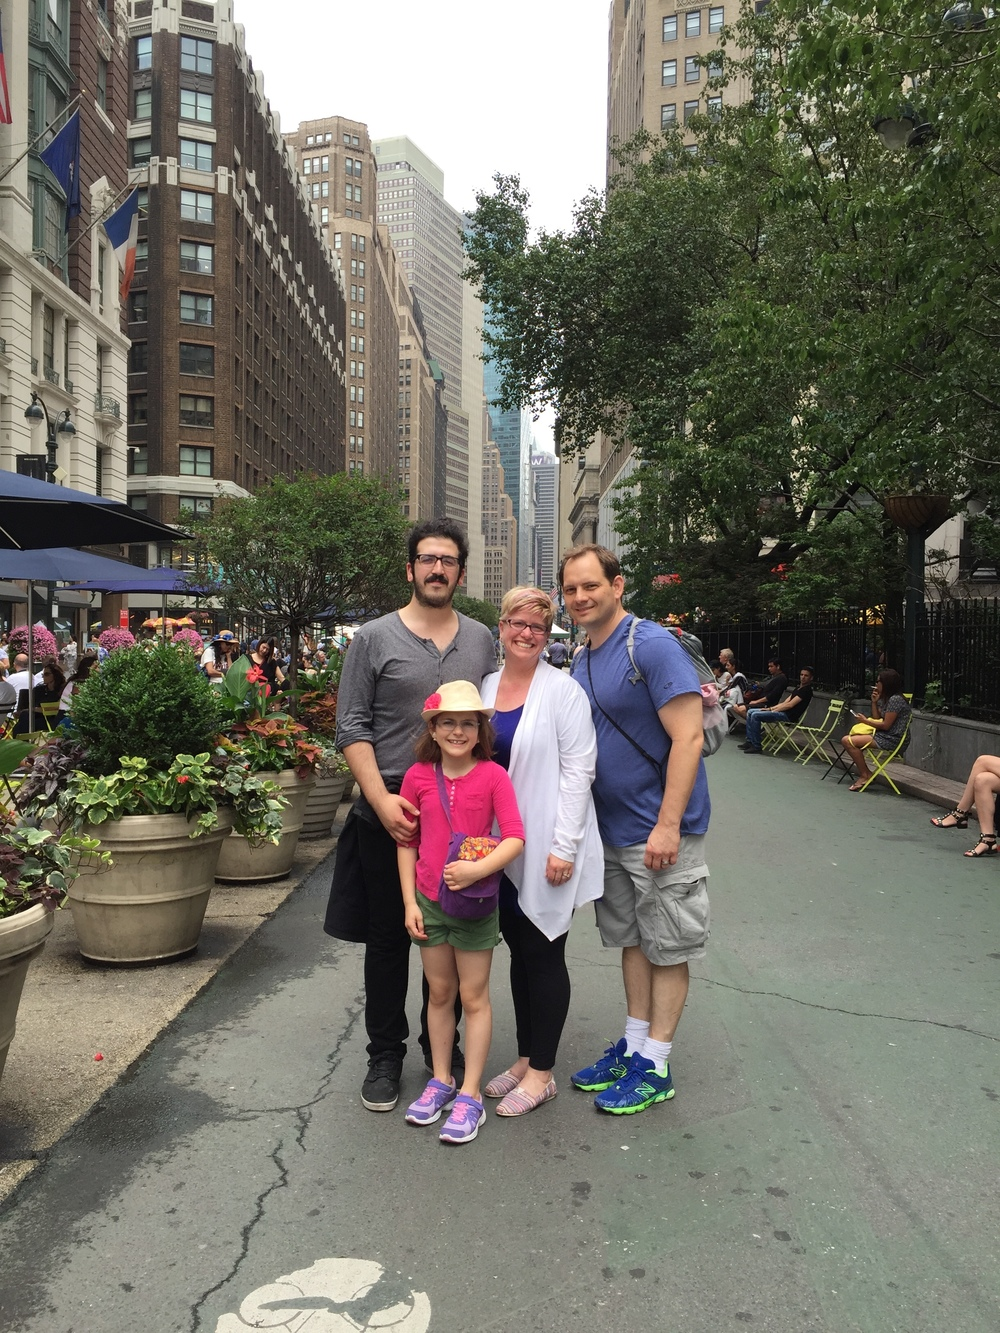 Emily with her family in New York City, June 2015 - Scott, Sage, and Rickey